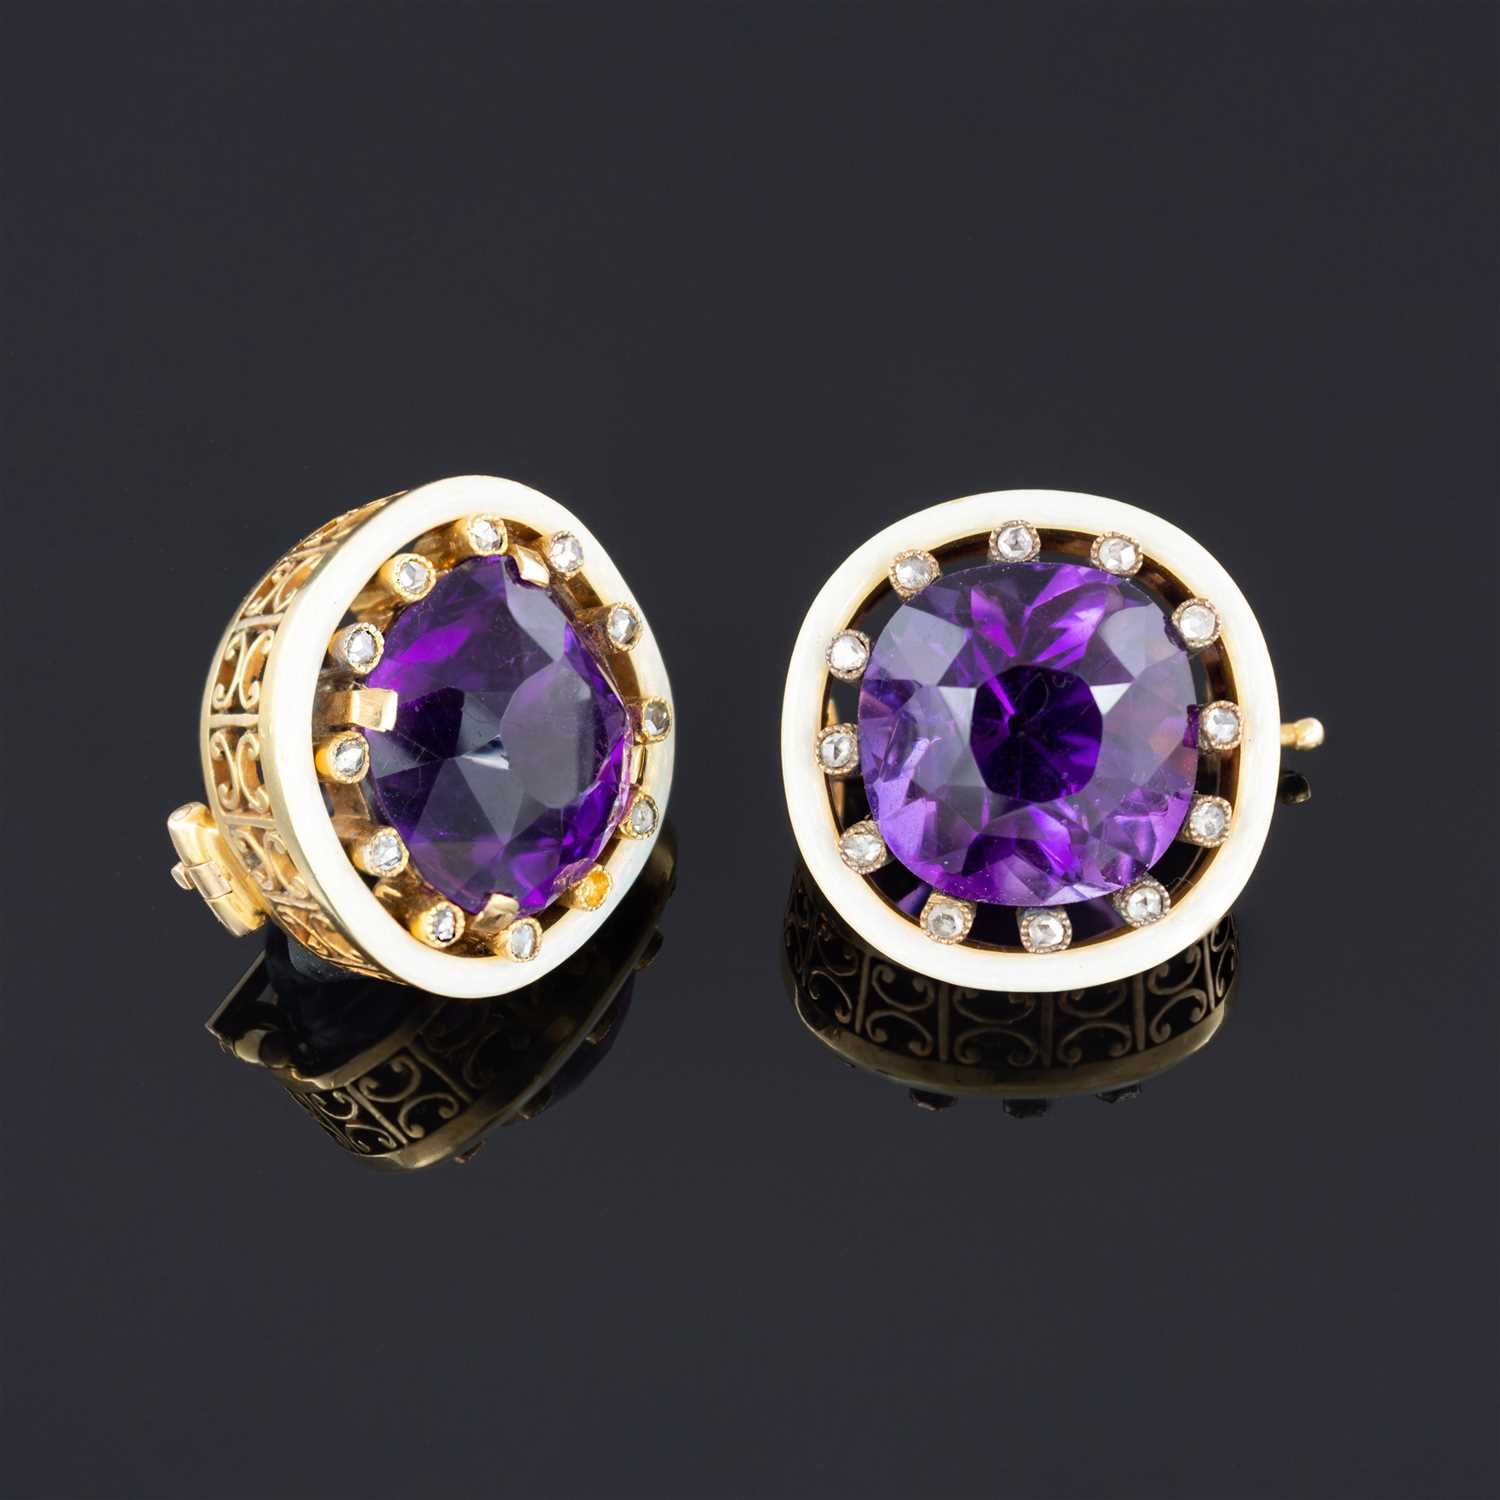 Lot 264-A pair of Fabergé amethyst and diamond lapel brooches